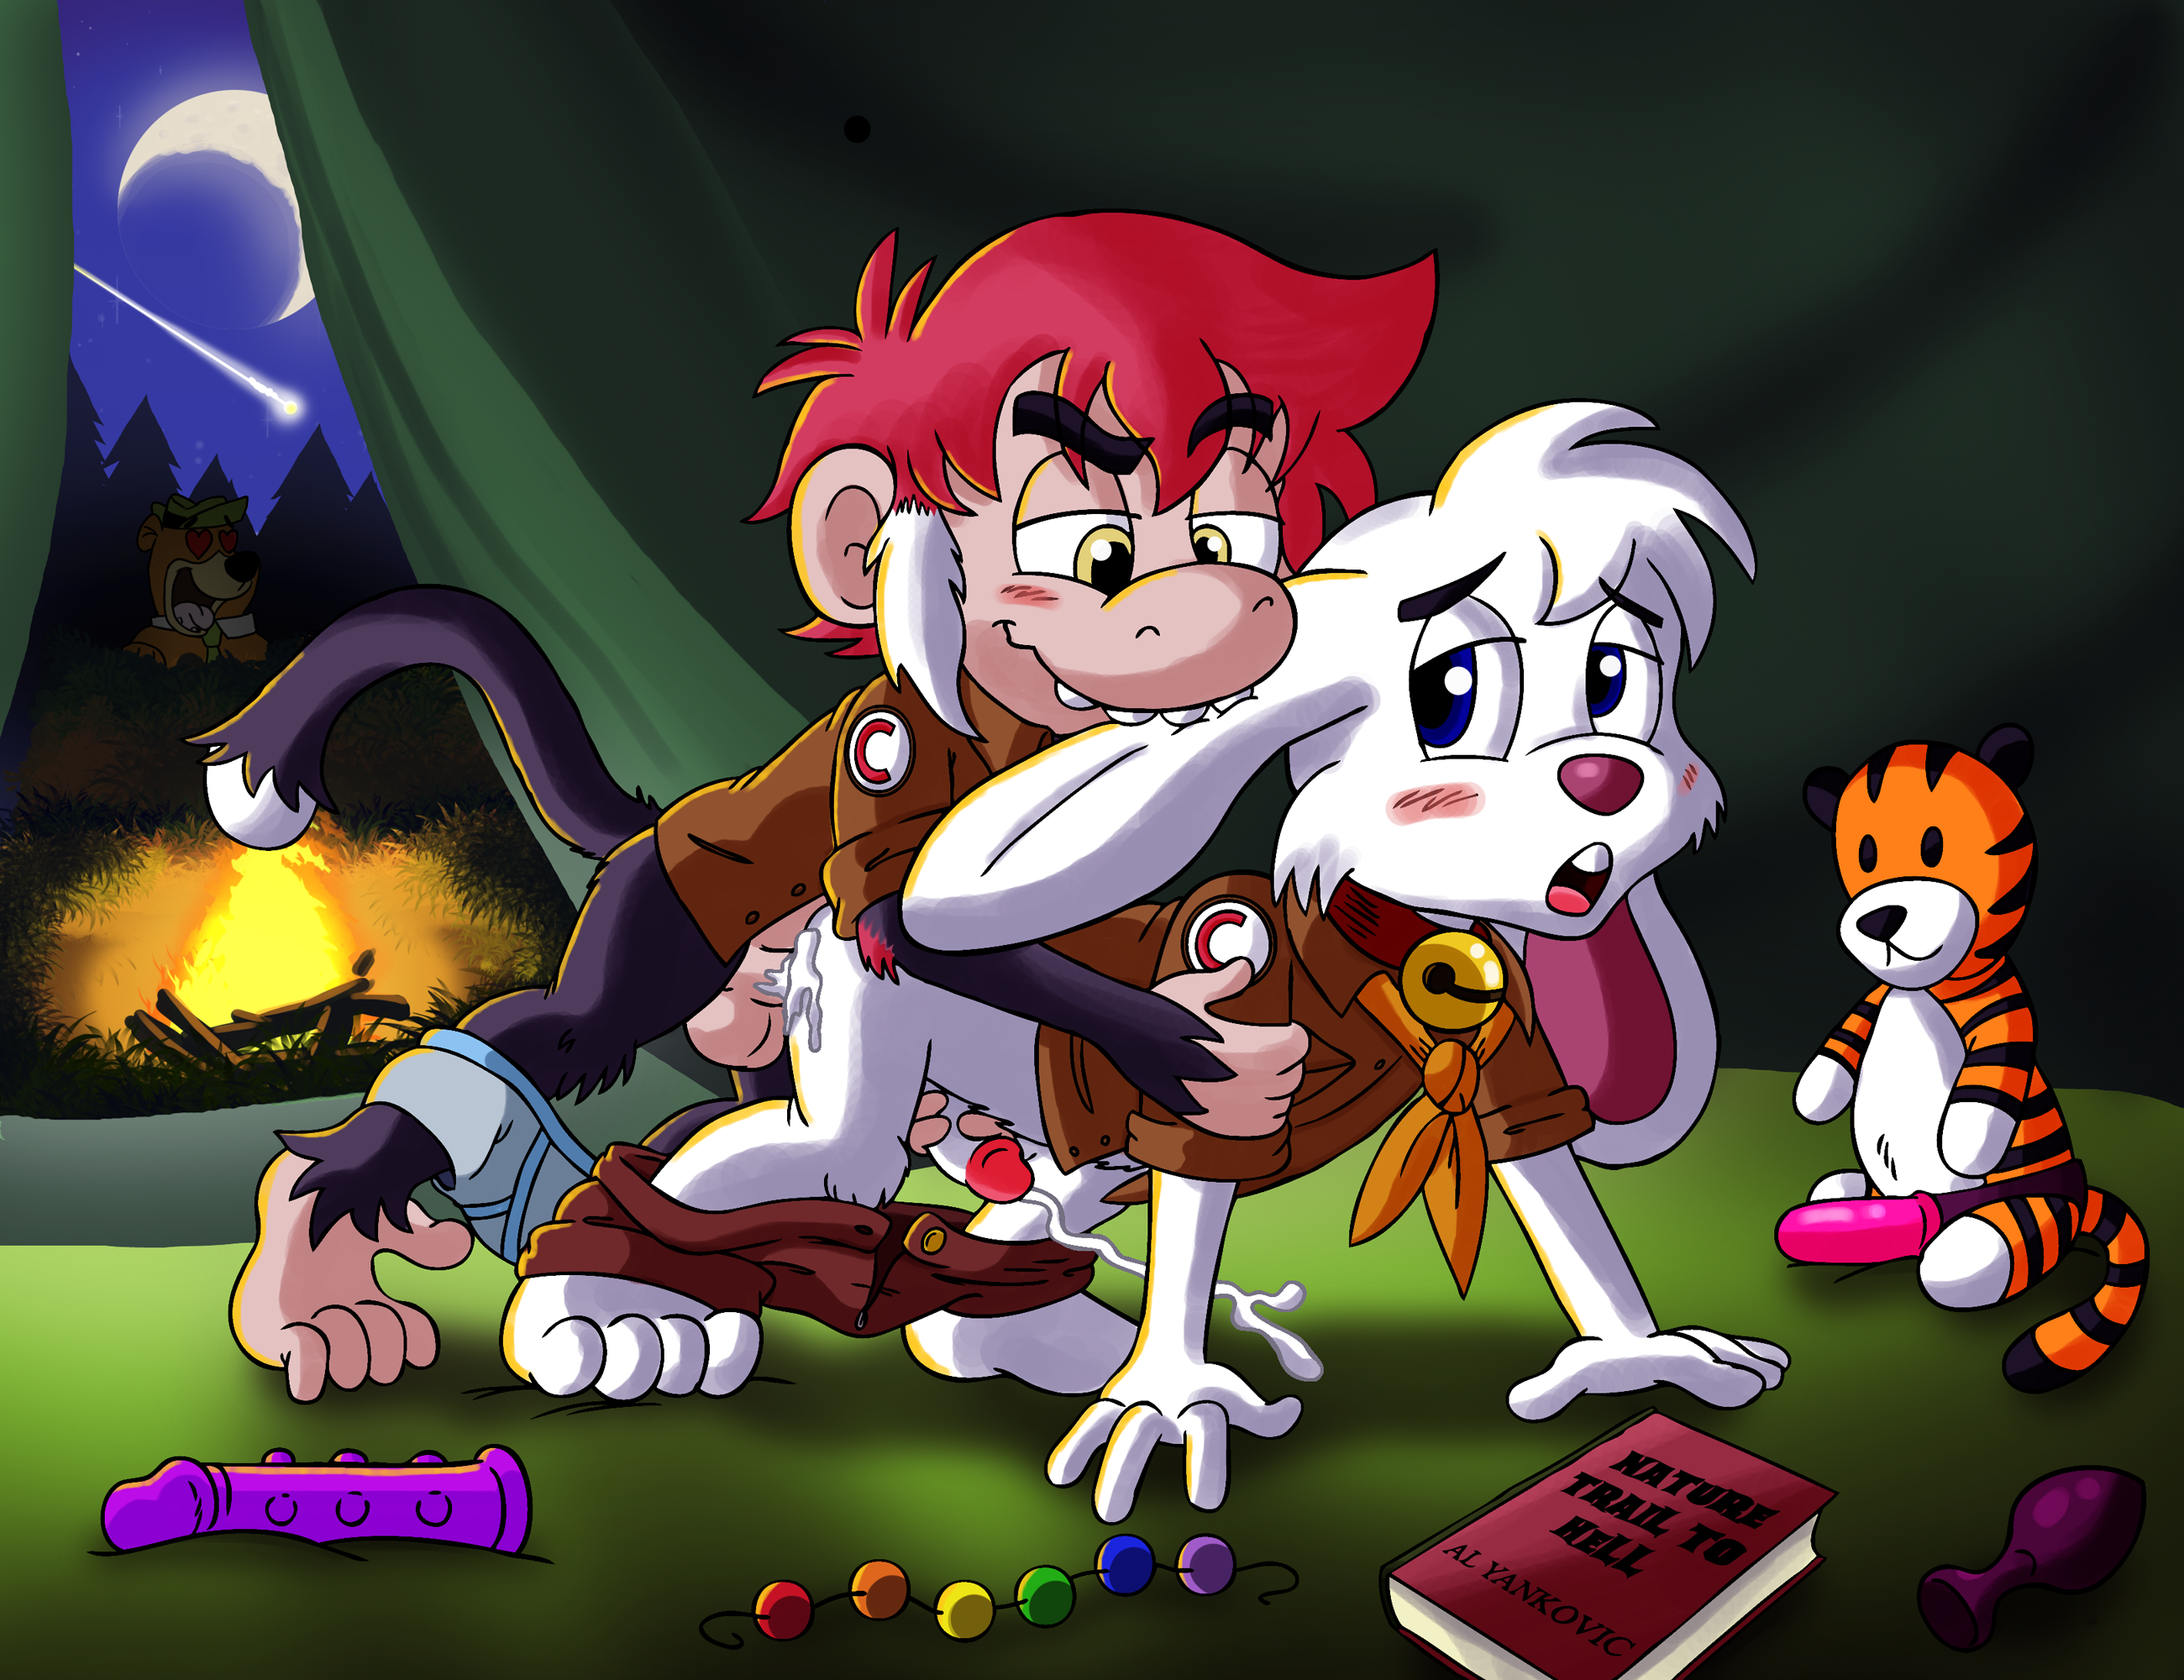 2663431_KevinSnowpaw_camping_it_up